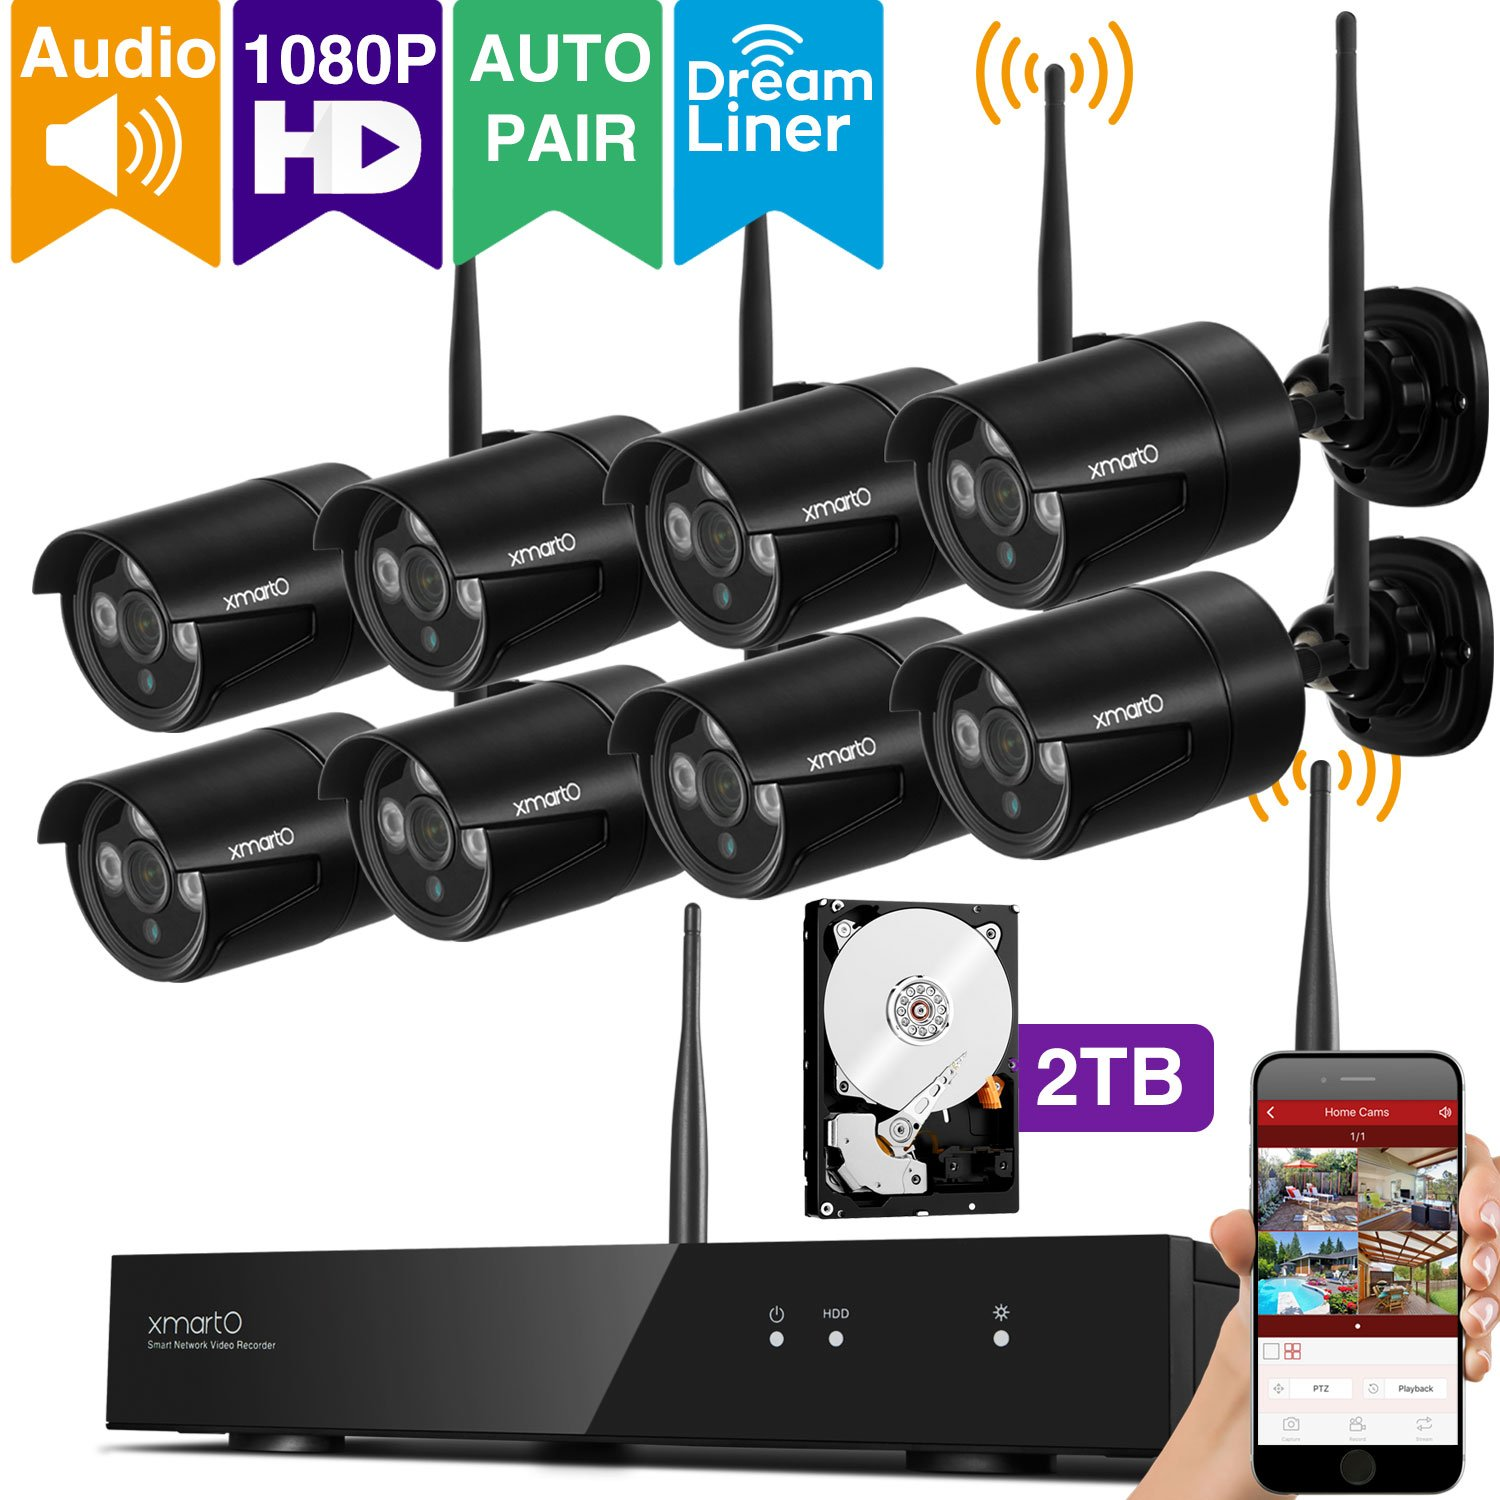 [Audio & Video] xmartO 8CH 1080p HD Outdoor Wireless Surveillance Camera System with 8x 1080p HD Wireless Security Cameras and 2TB Hard Drive, Dream Liner WiFi Relay, Auto-Pair, 80ft Night Vision